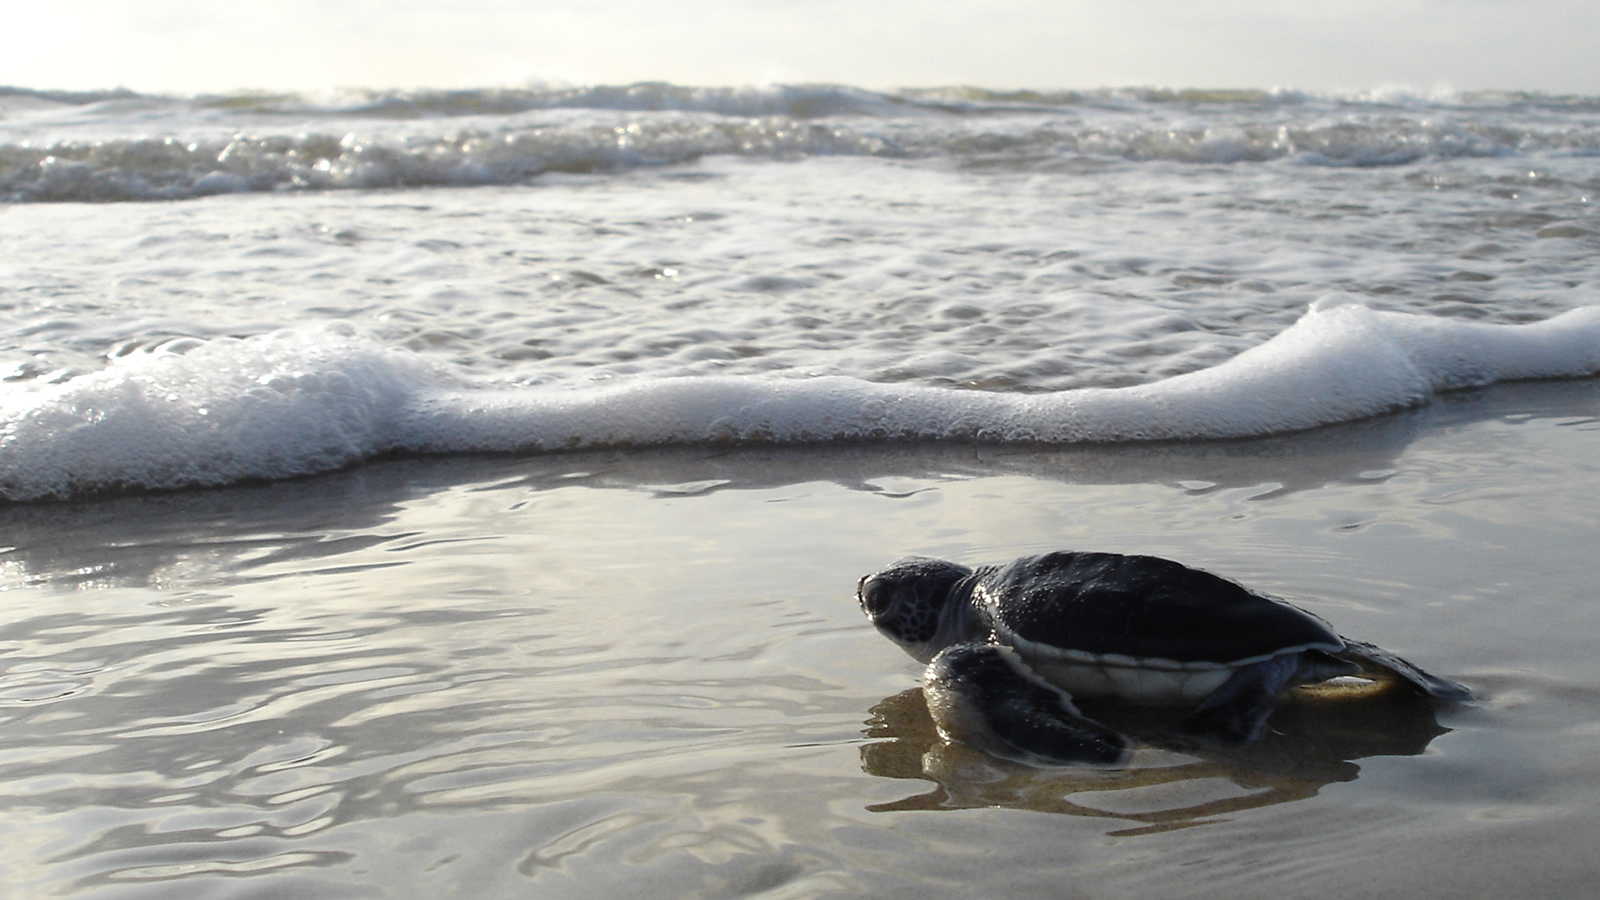 <h4>OUR OCEANS</h4><h5>Goal: We must defend our oceans, marine wildlife and beaches by stopping new offshore drilling and more.</h5><em>NPS Photo</em>